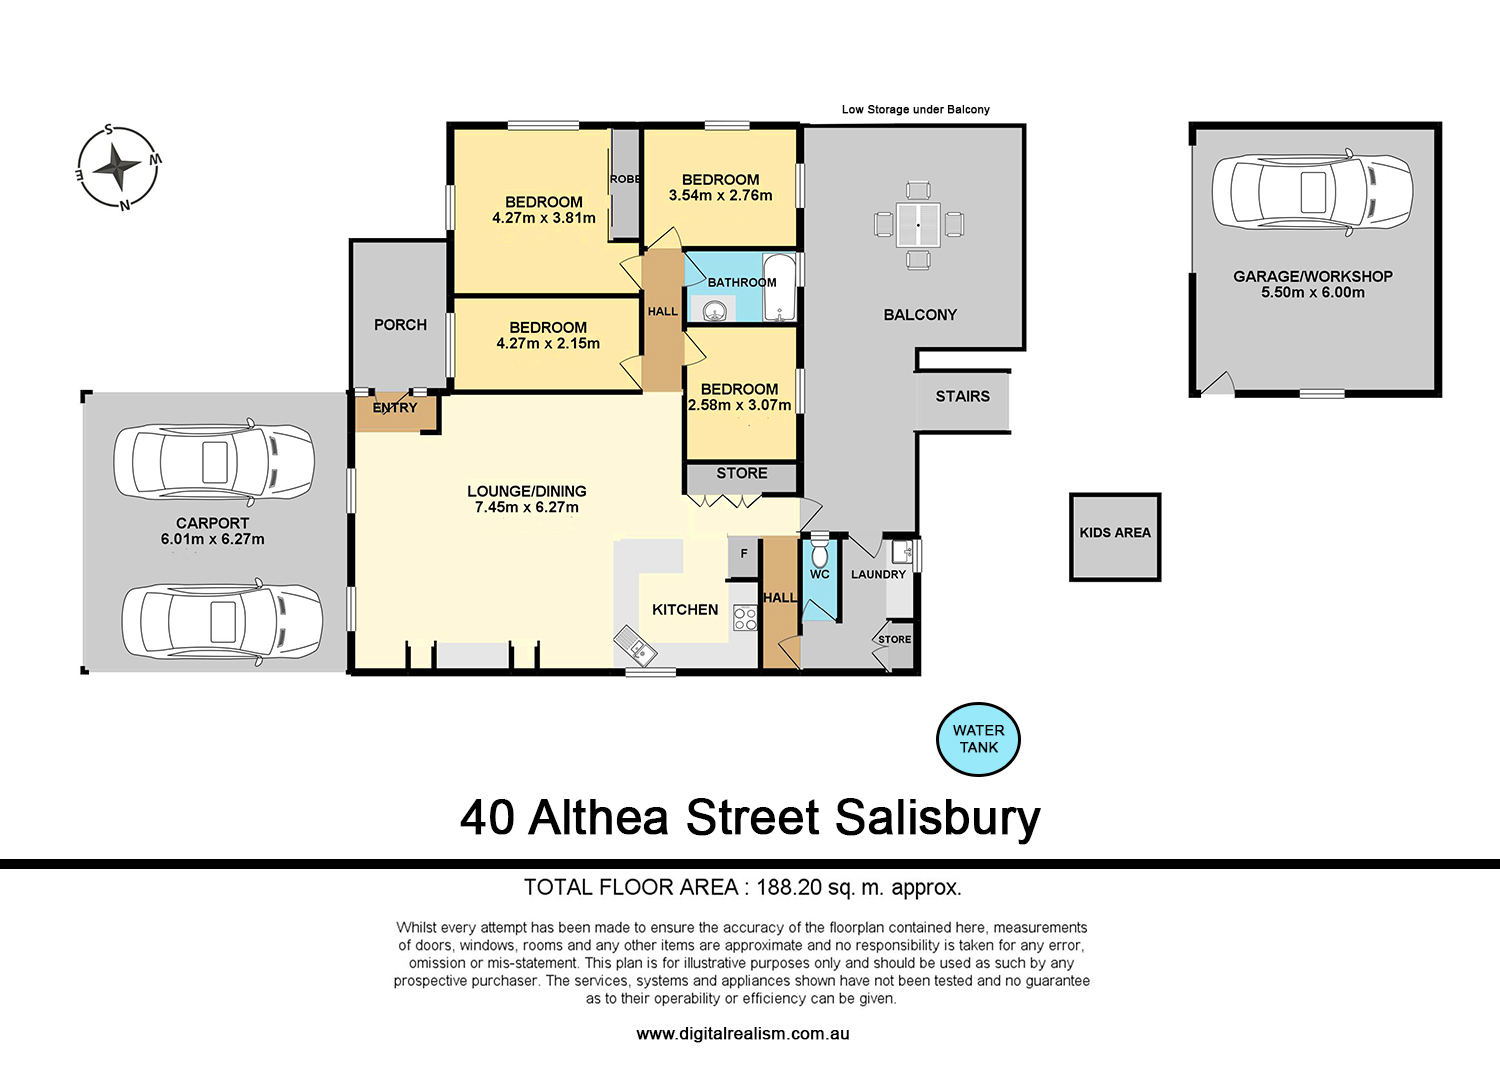 40 Althea St SALISBURY QLD 4107 Floorplan 1